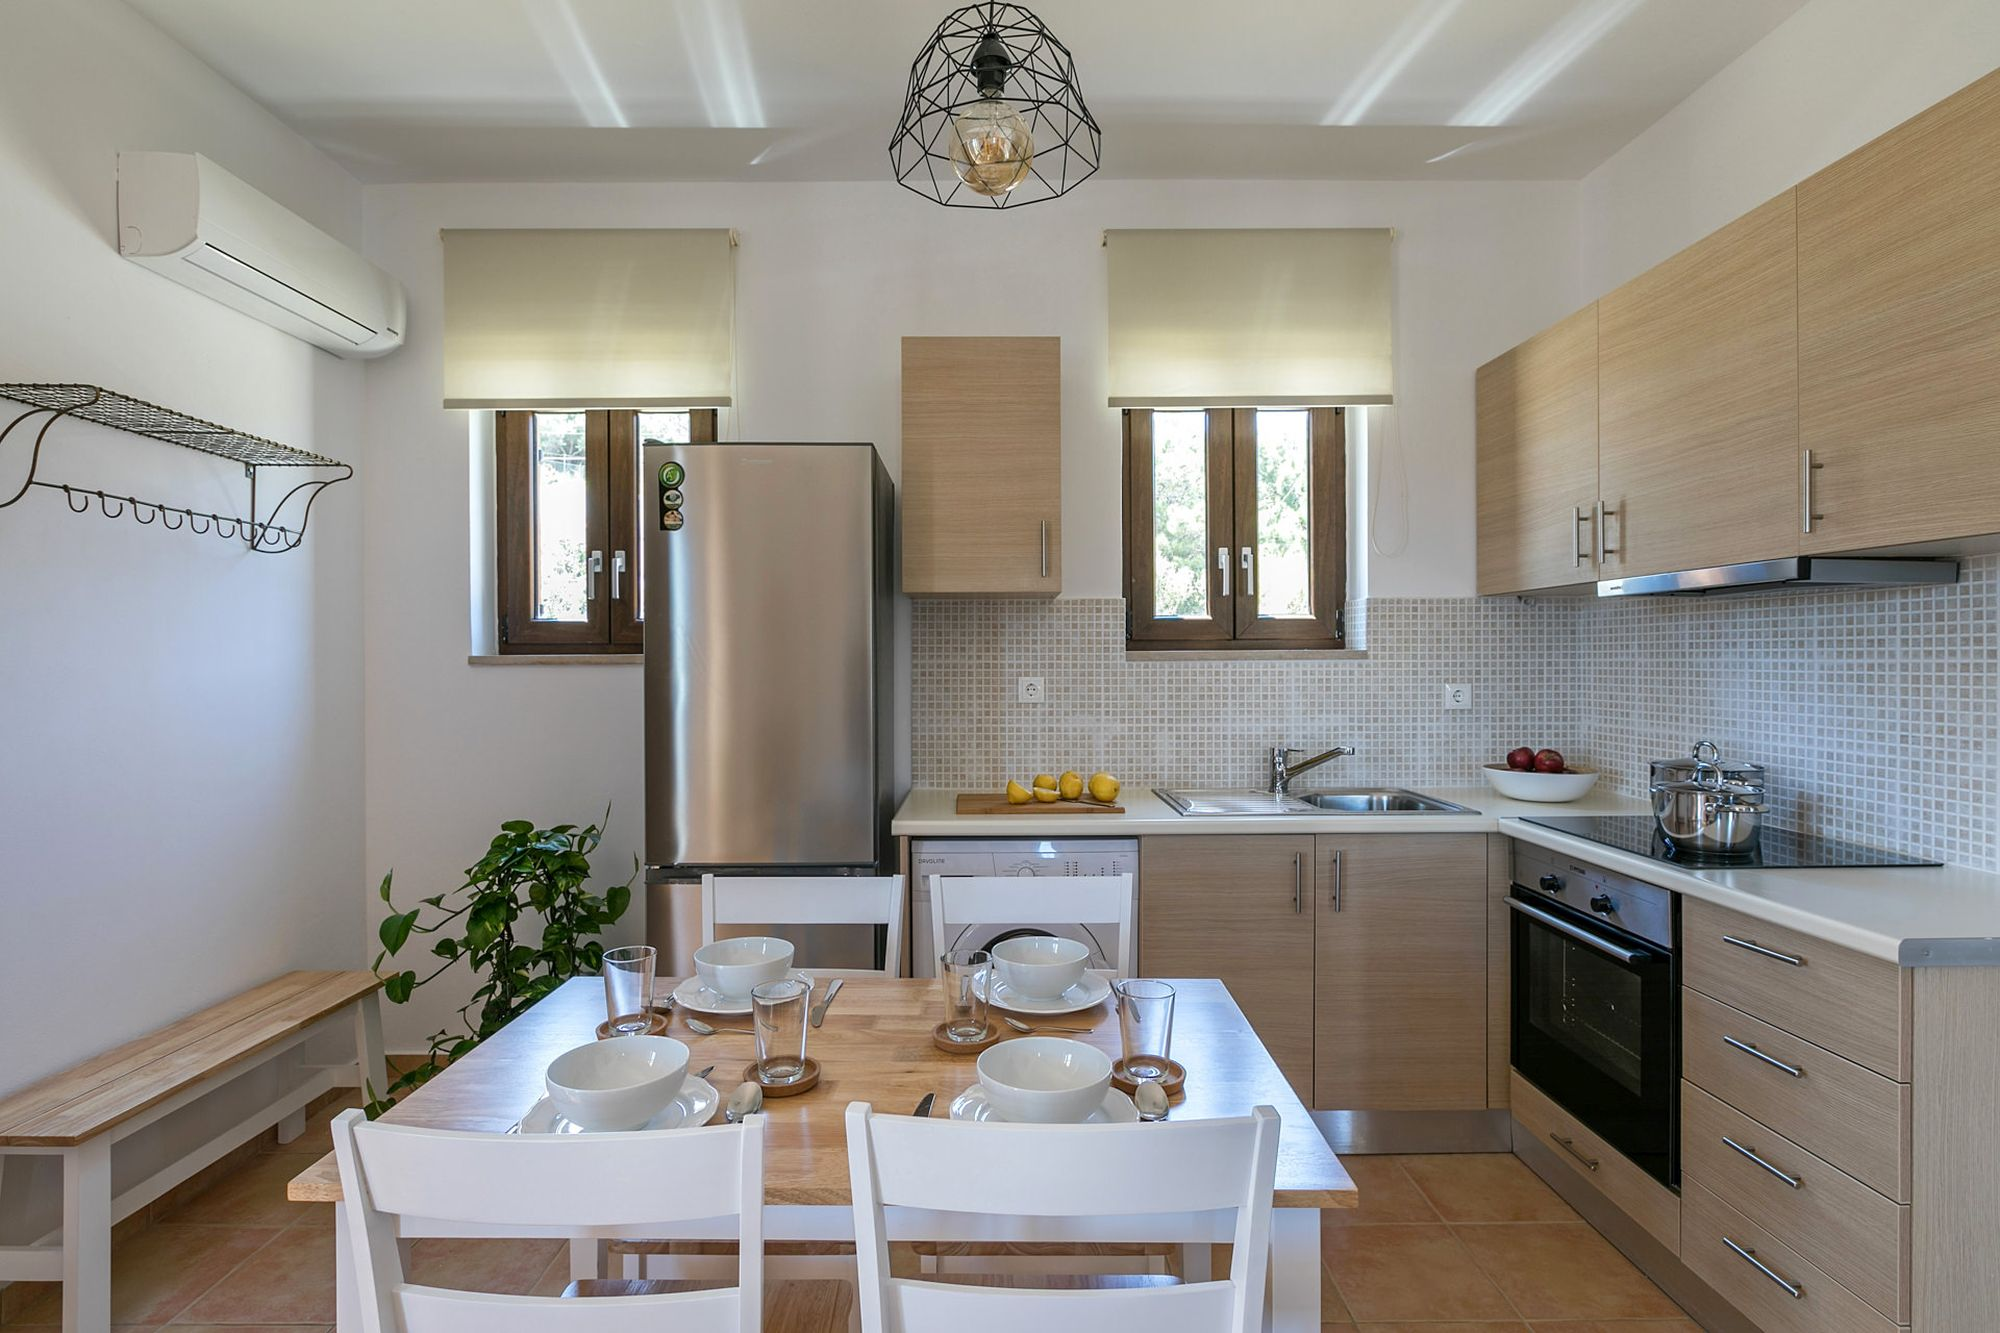 Syra Suites modern kitchen with beige cabinets, fully equipped with a big inox fridge, an electric cooker oven, a wooden bench and wooden dining table with four white chairs.